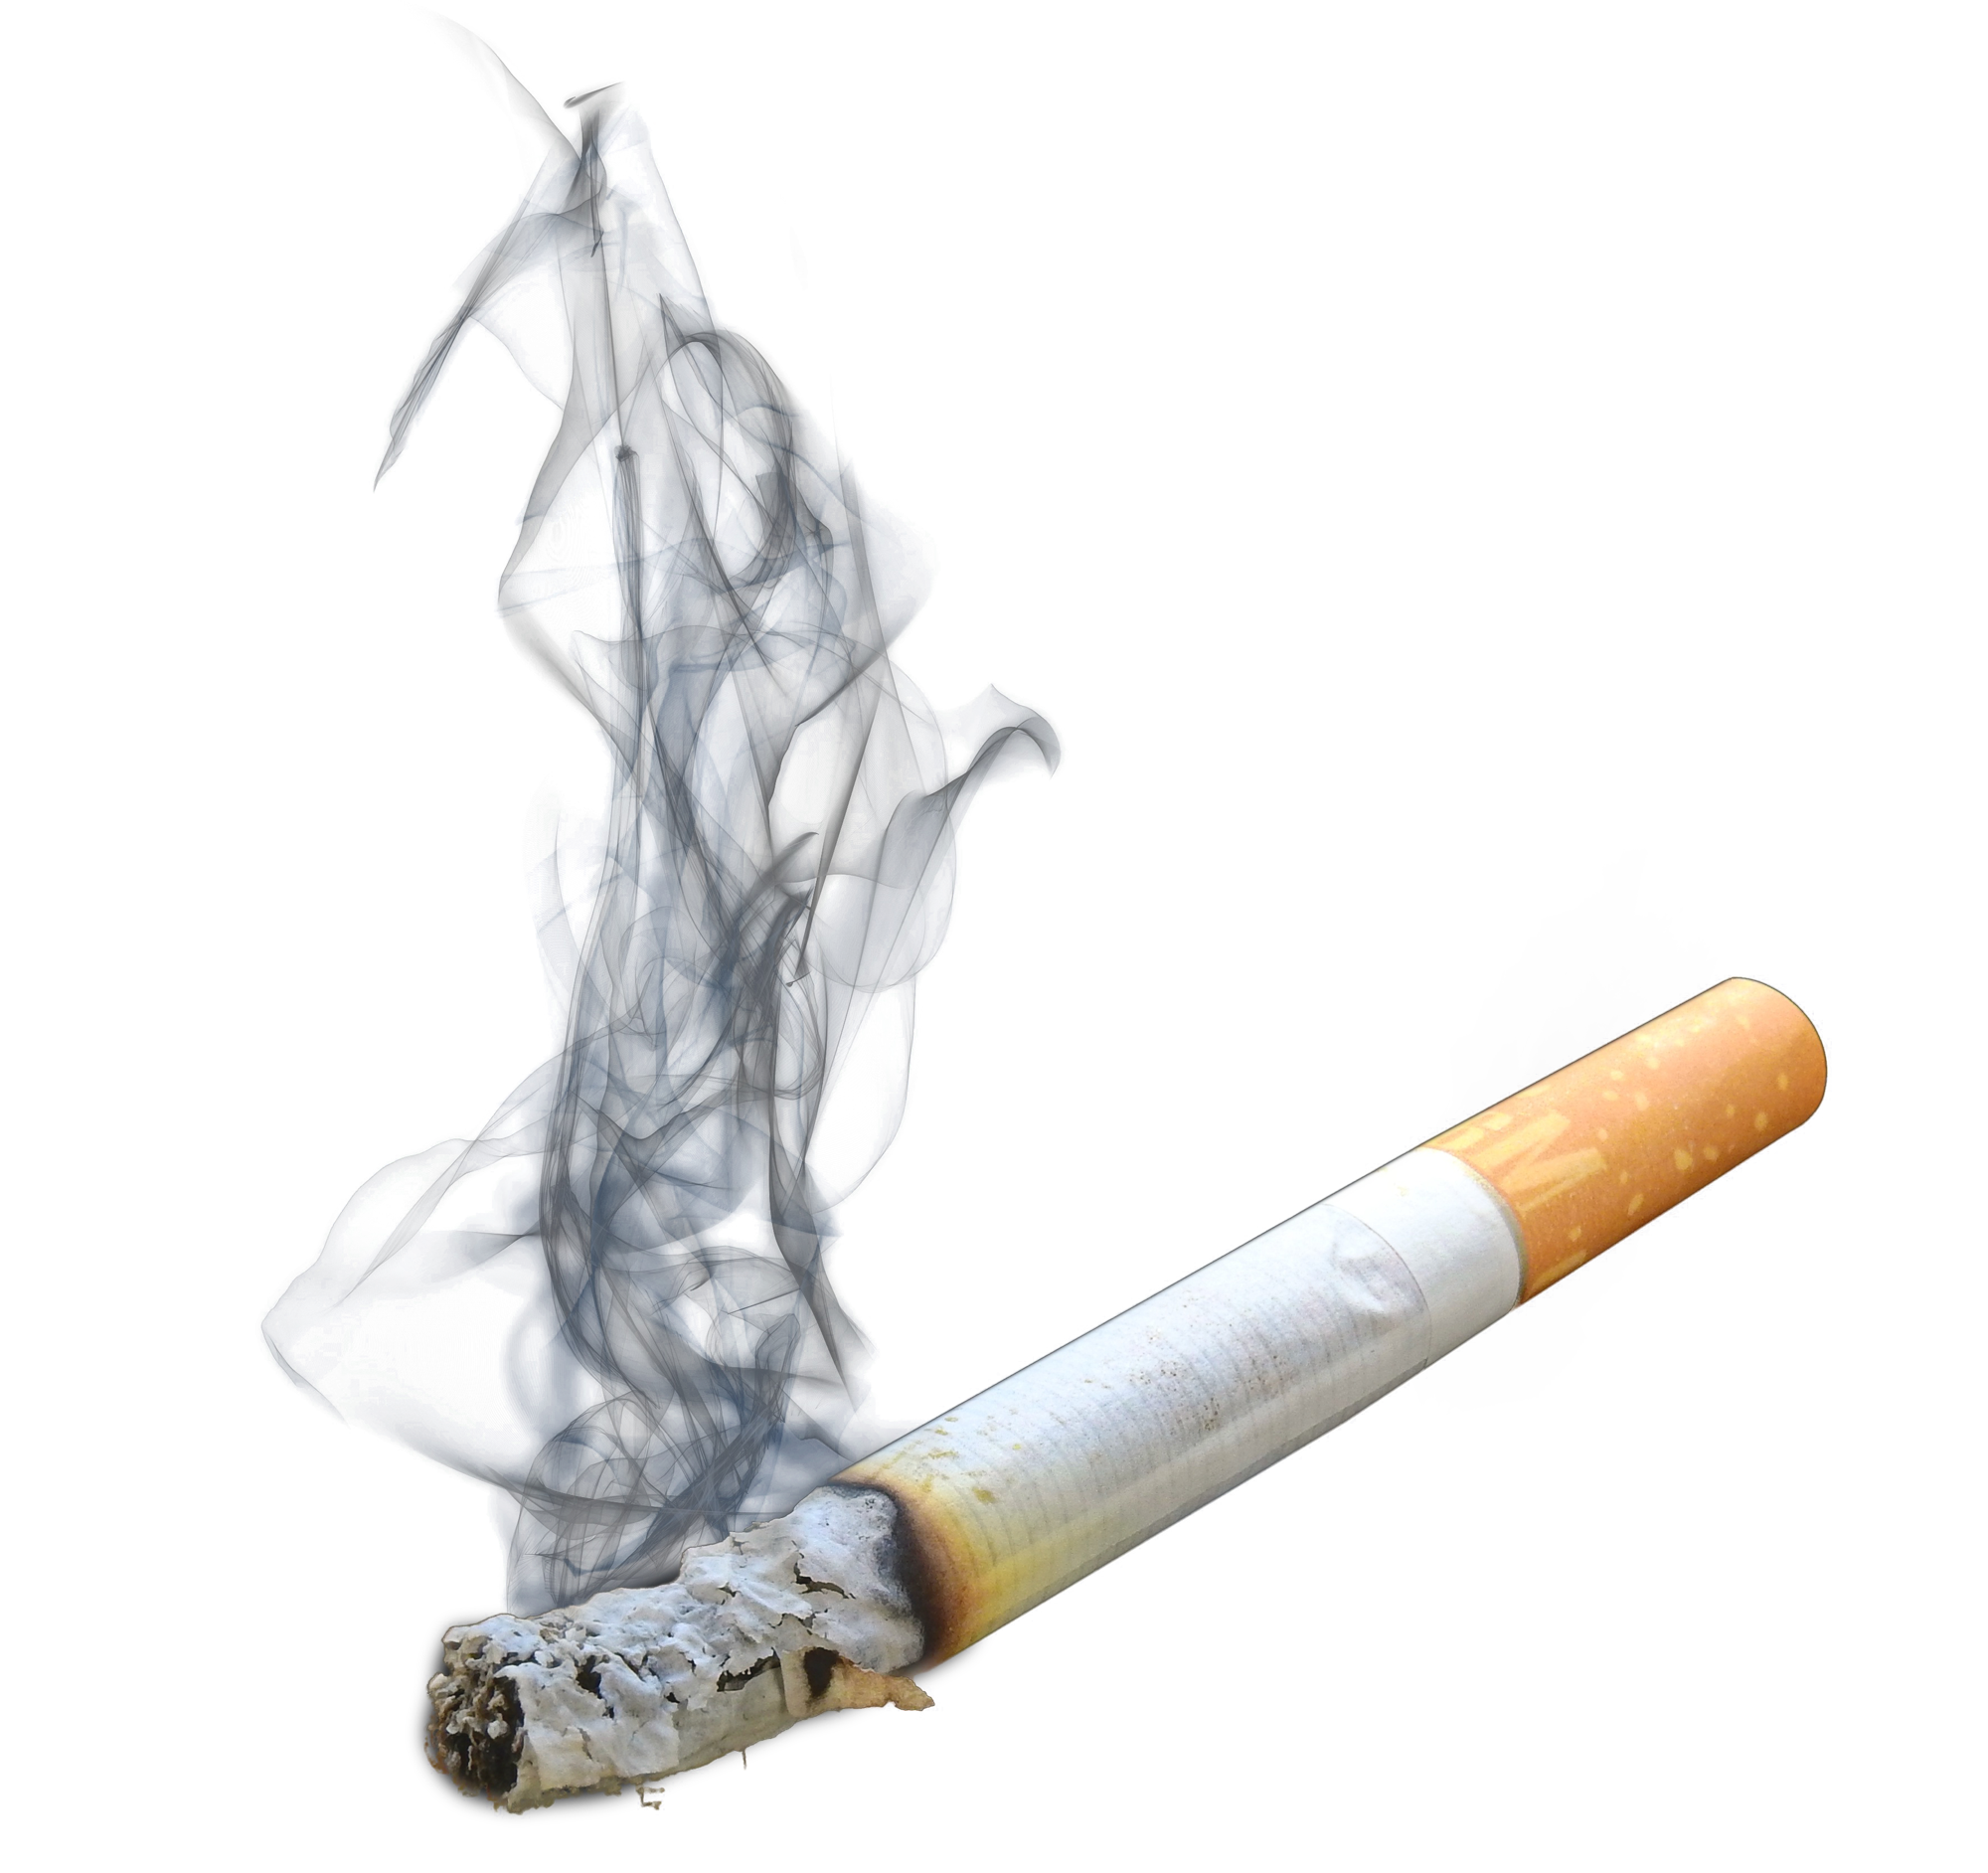 Thug life cigarette png. Joint transparent image arts